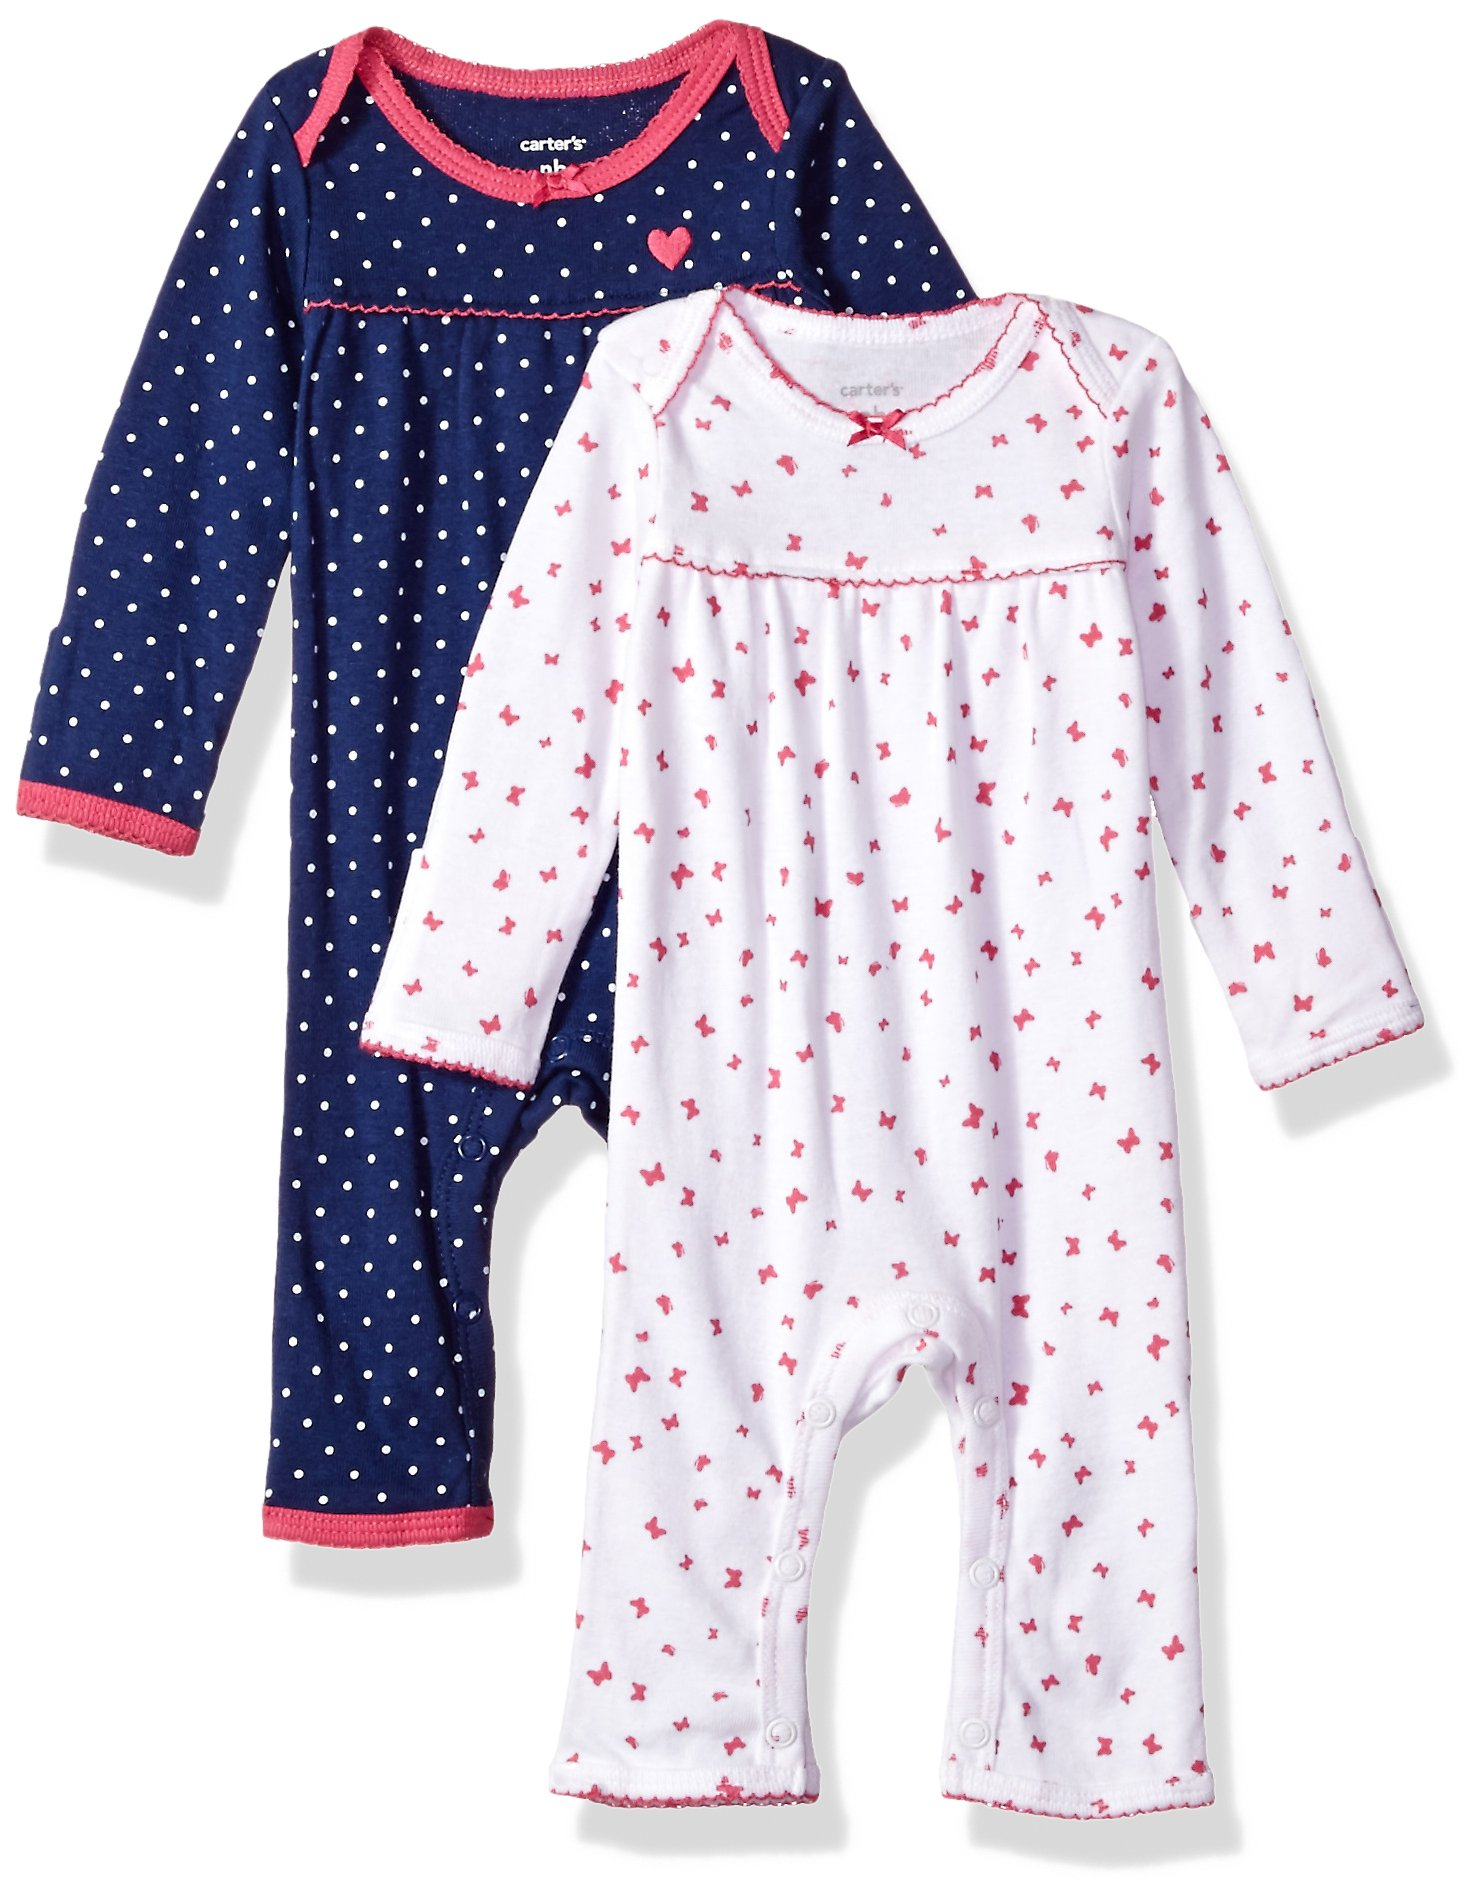 Carter's Baby Girls' 2 Pc Coverall Set - Girl - 6 Months